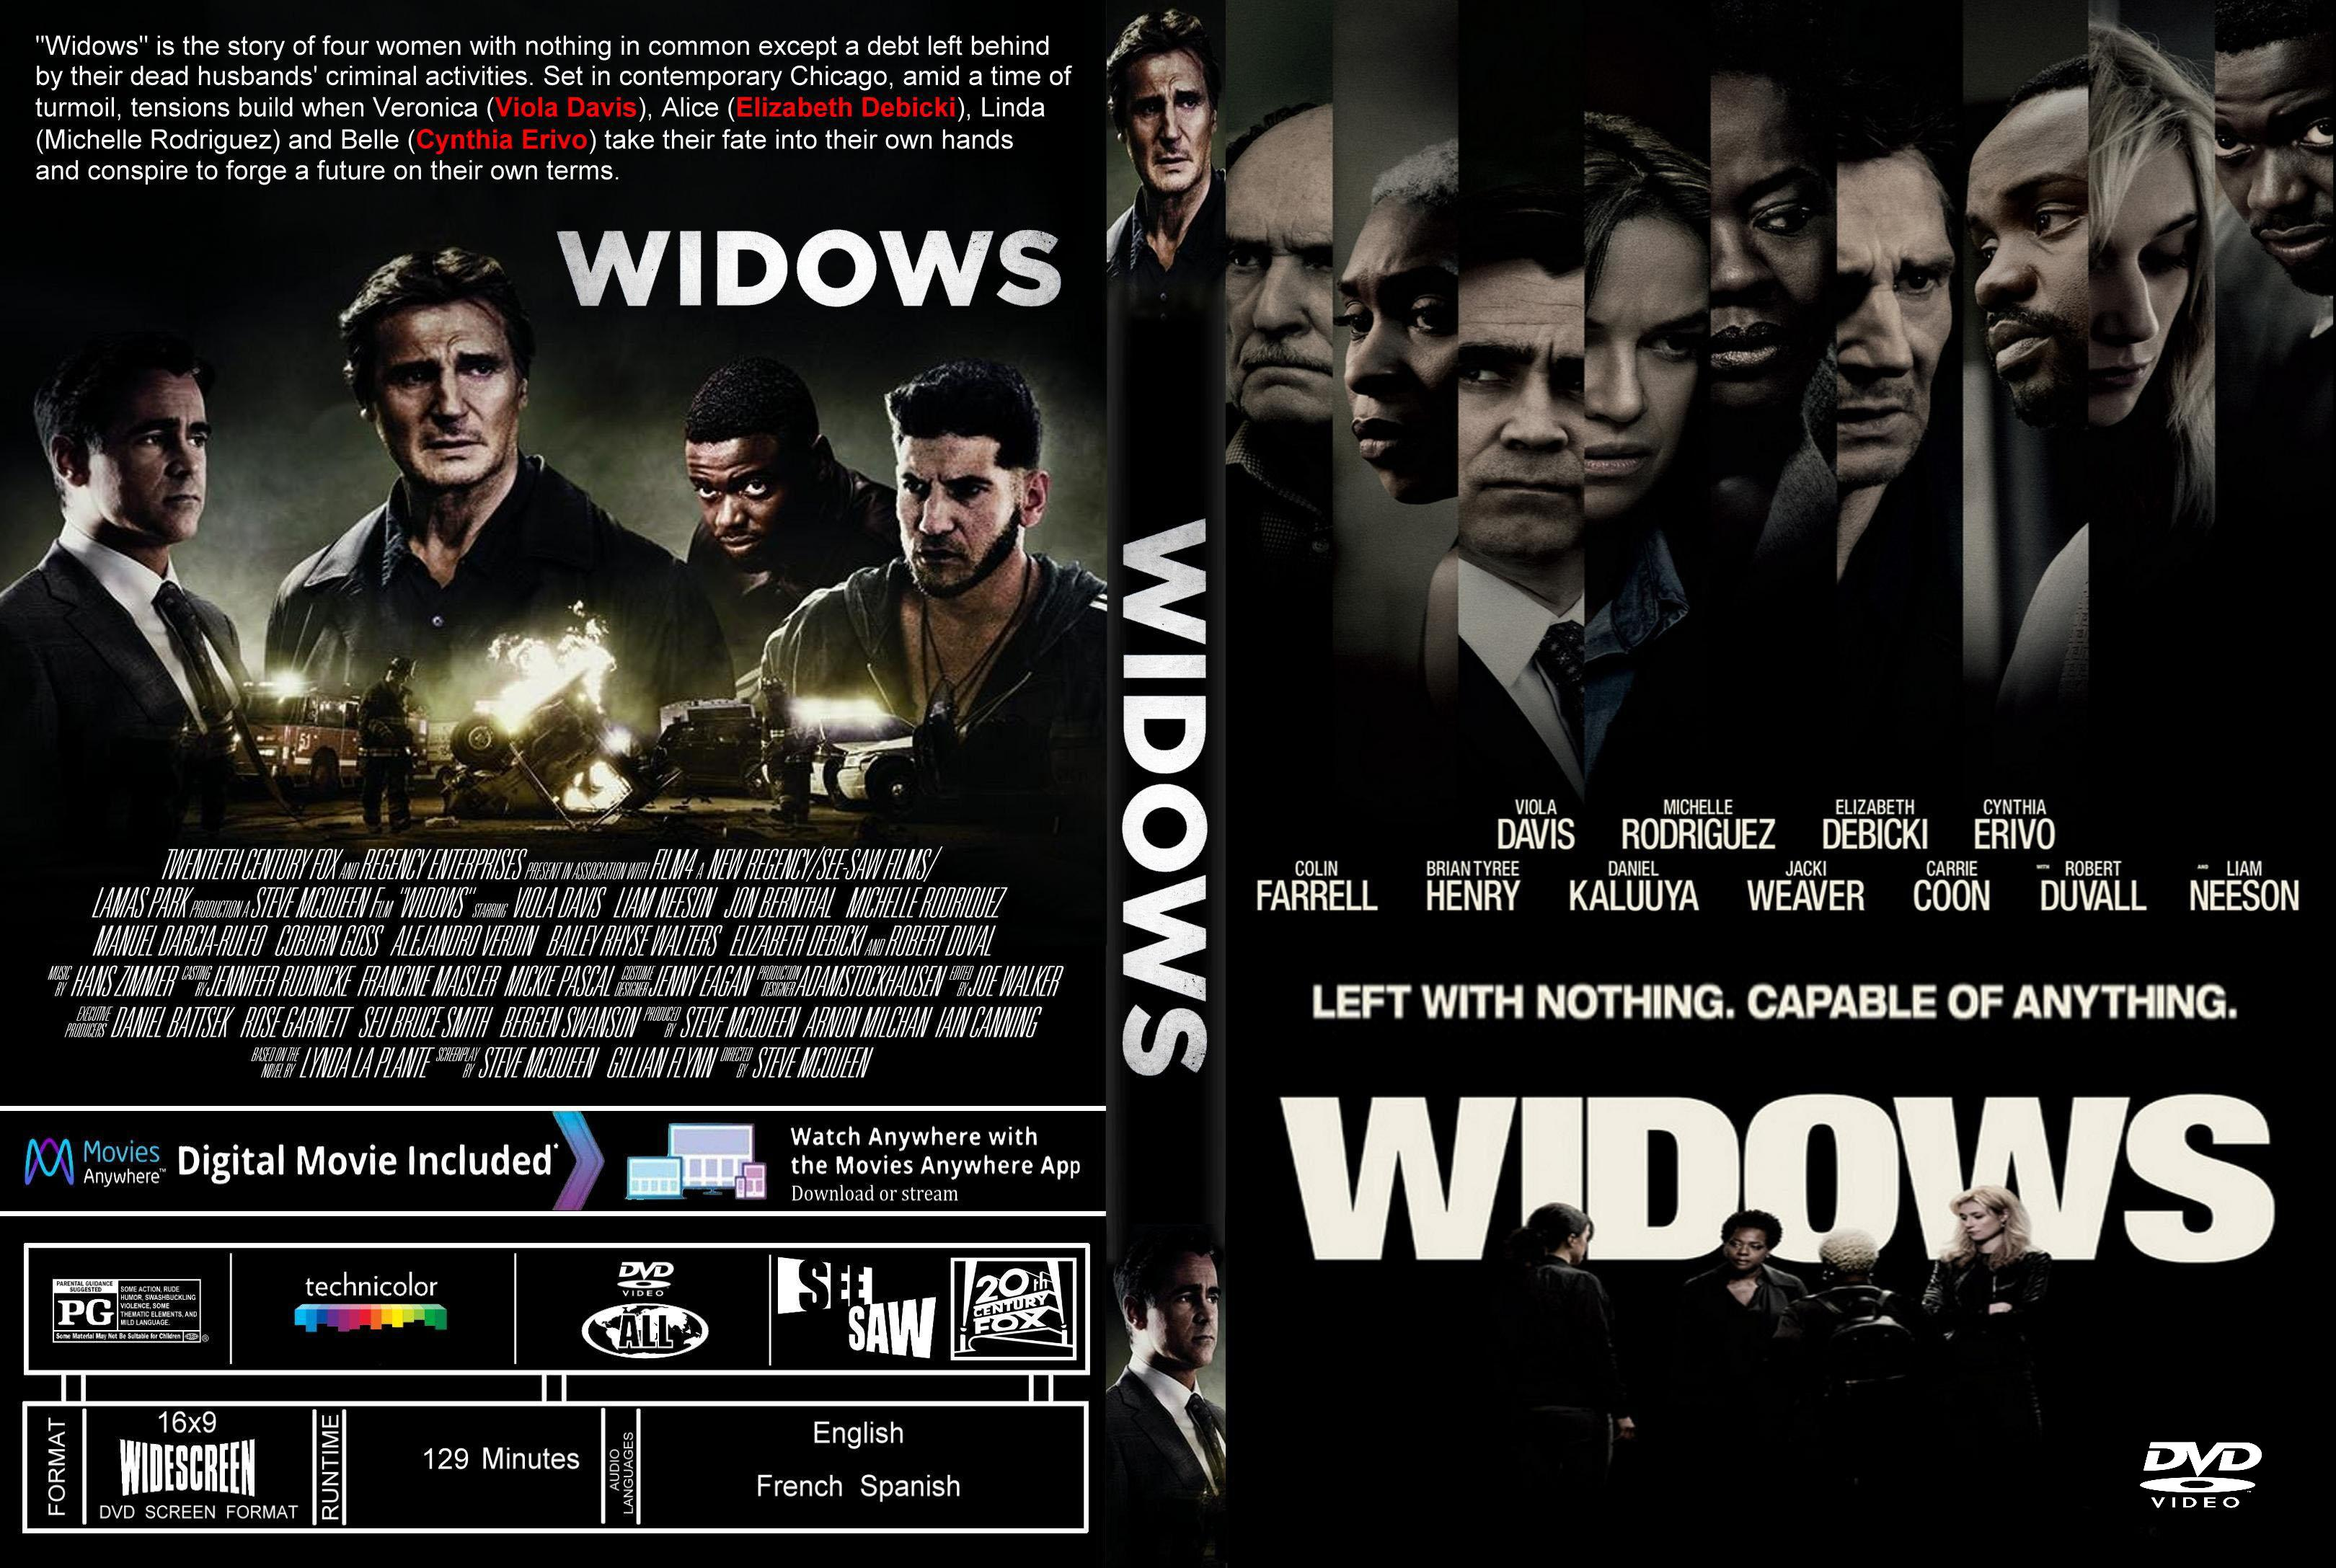 Widows (2018) : Front   DVD Covers   Cover Century   Over